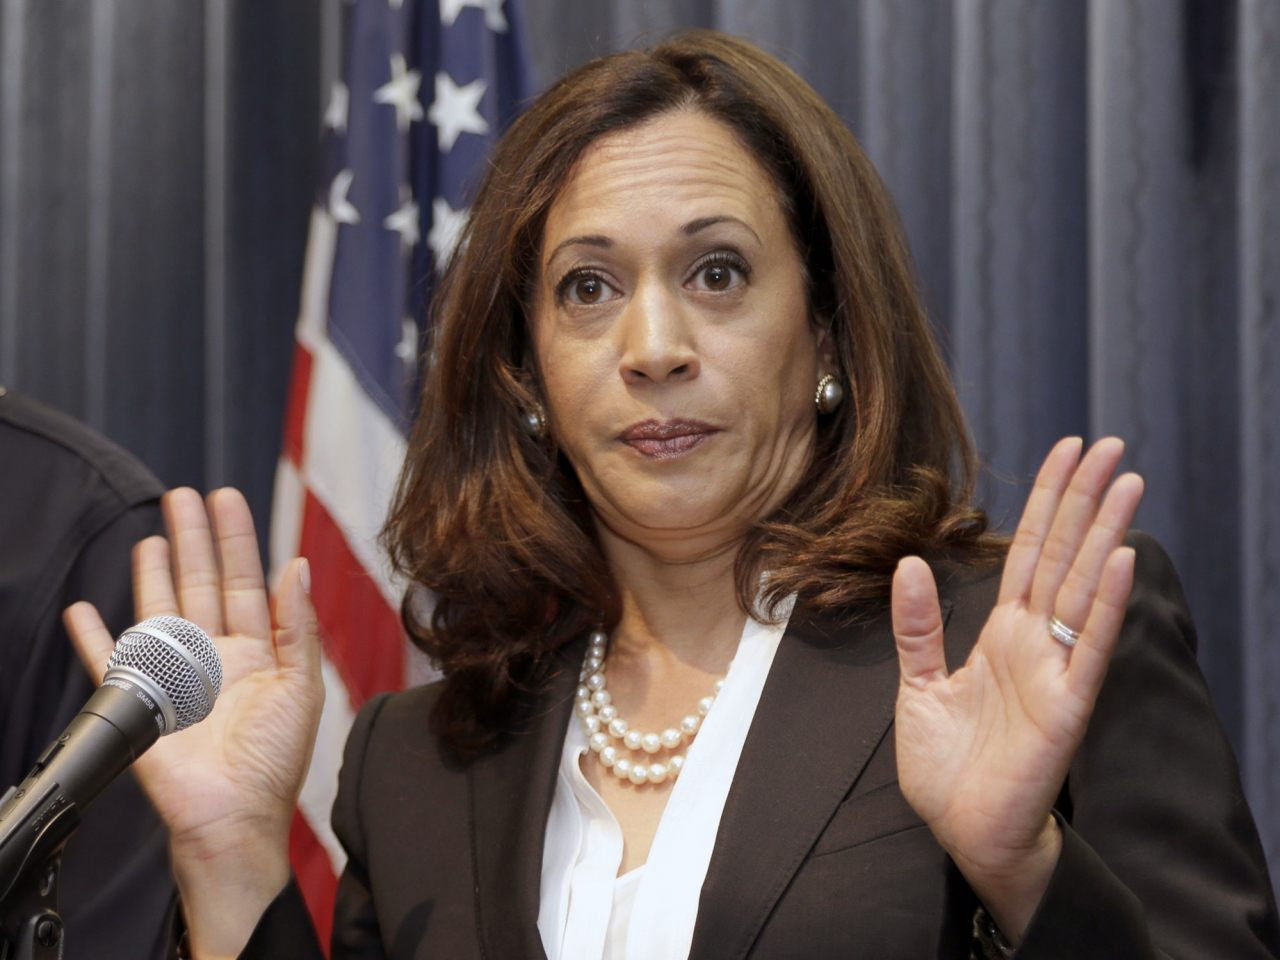 Journalist who exposed Planned Parenthood: Kamala Harris weaponized her office to punish me on behalf of her donors